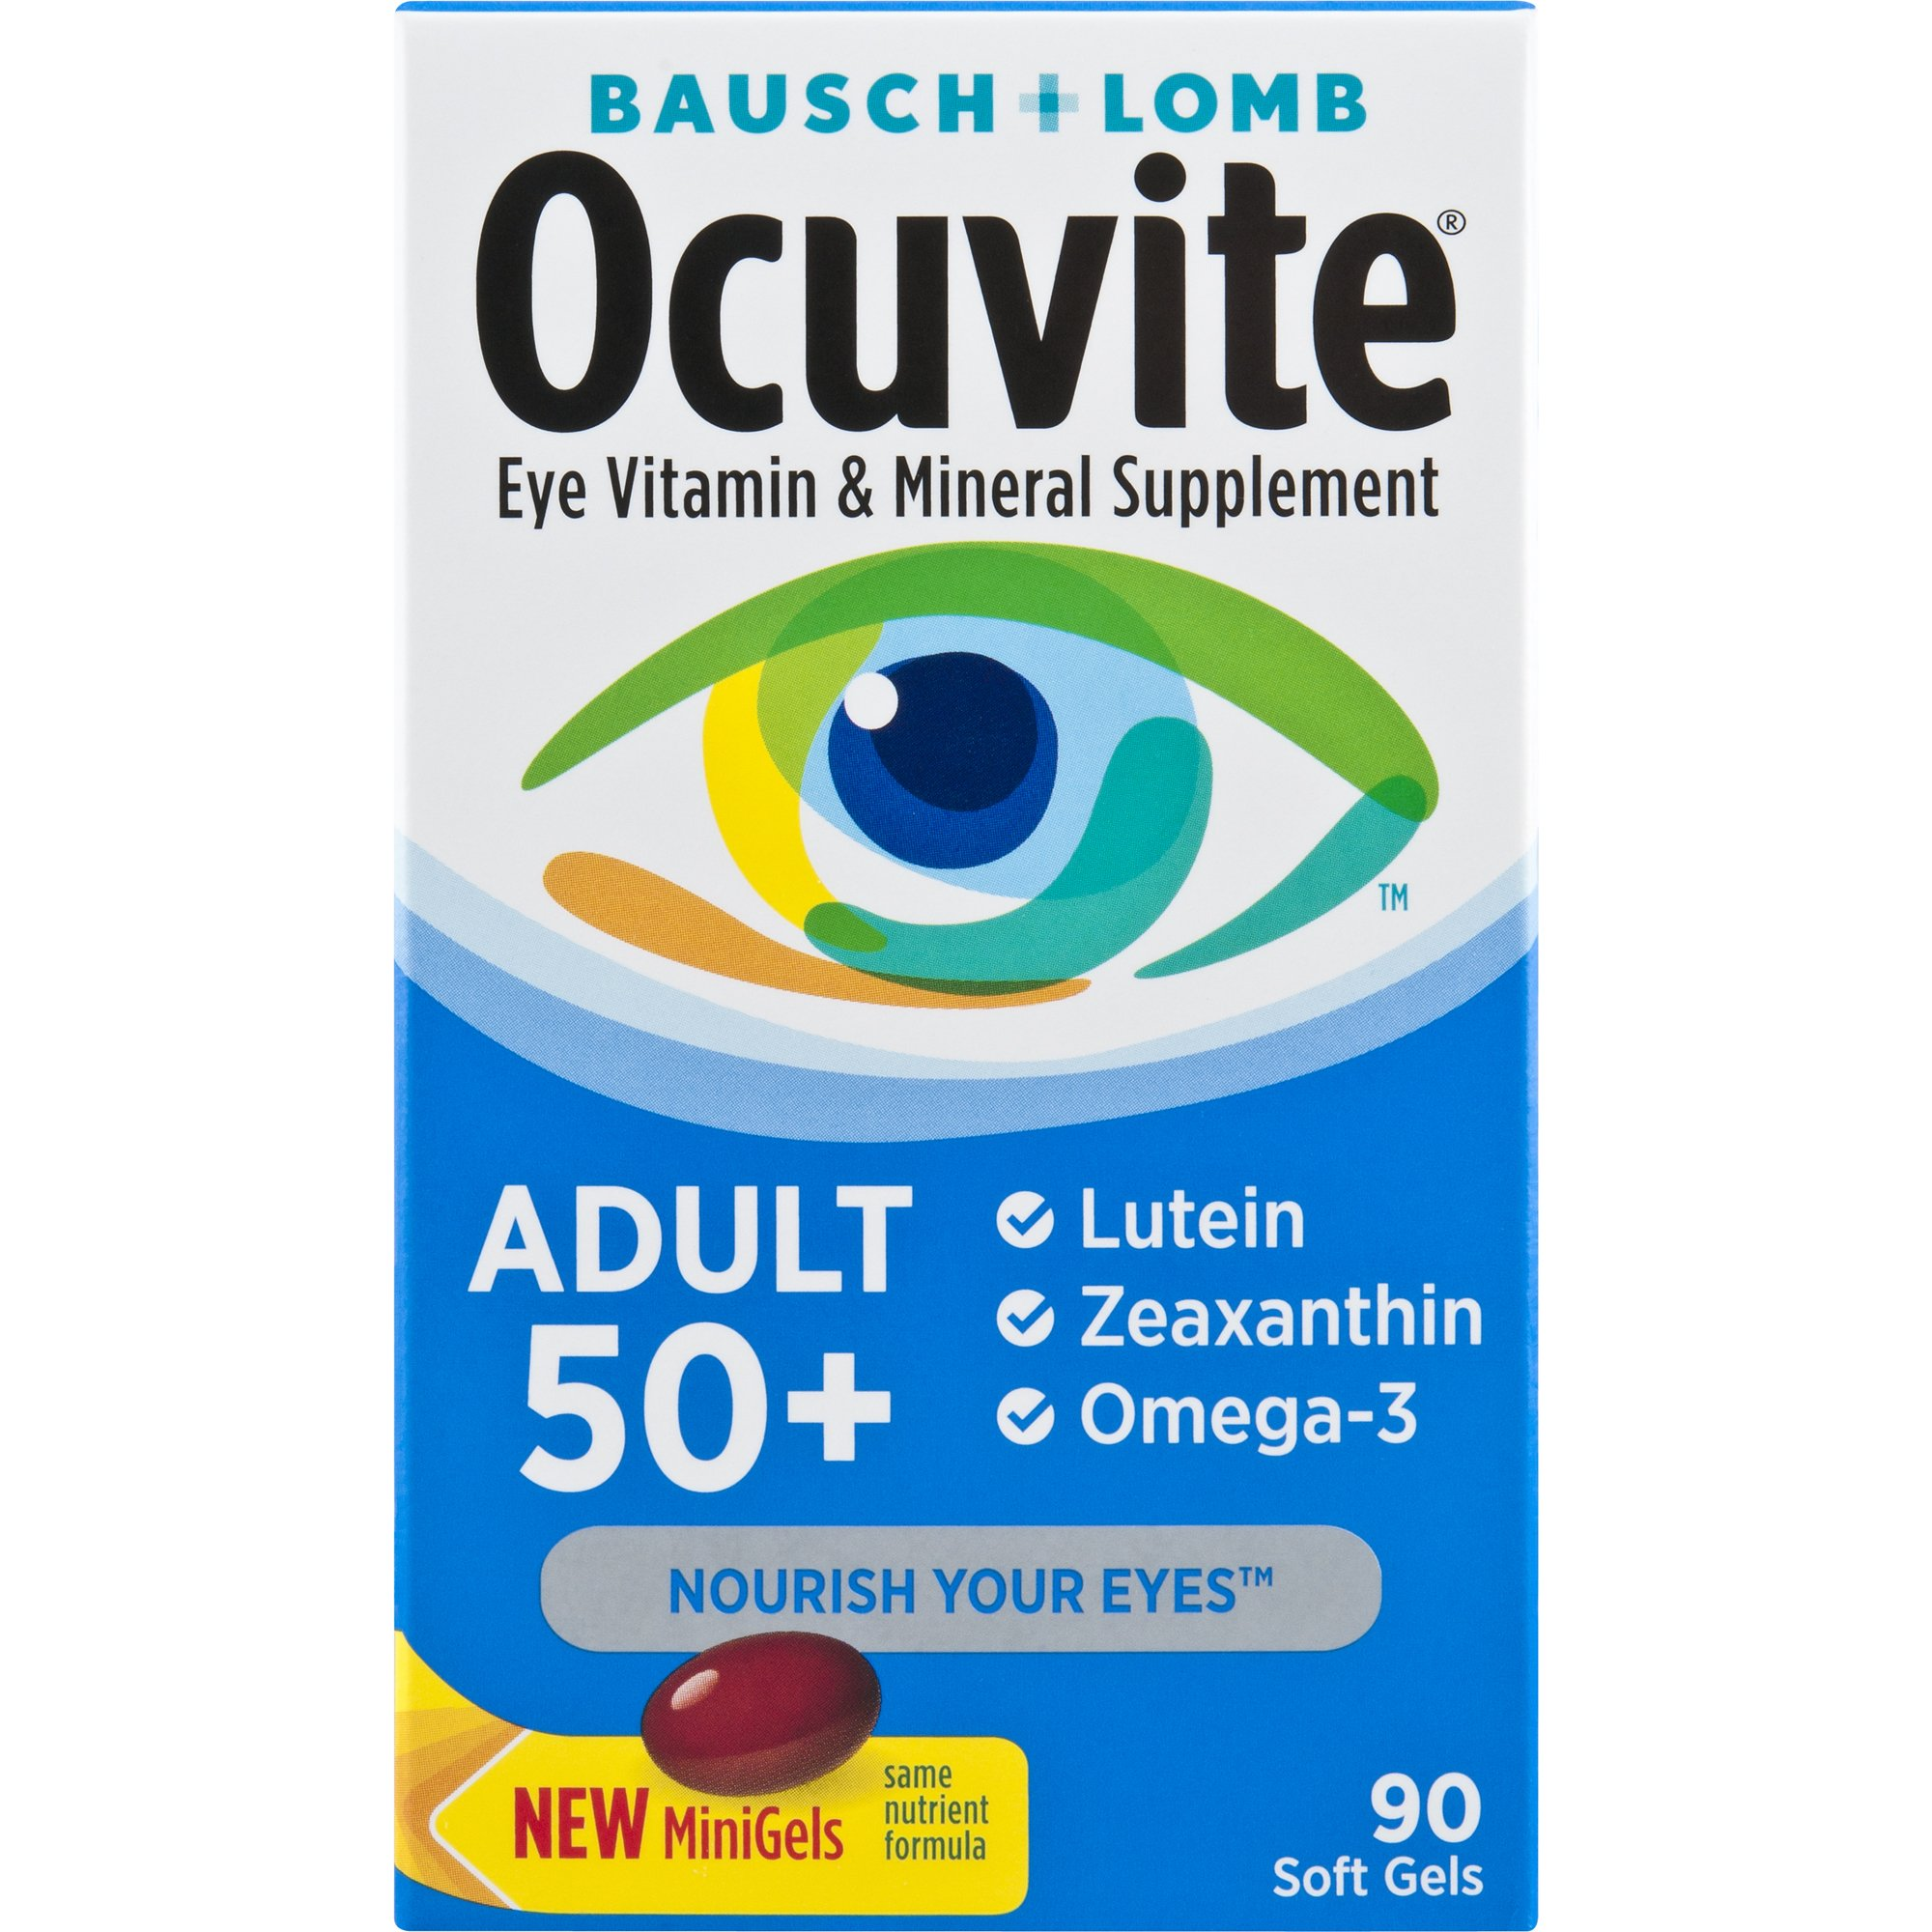 Ocuvite Eye Vitamin & Mineral Supplement for Adult 50+, Contains Zinc, Vitamins C, E, Omega 3, Lutein, & Zeaxanthin, 90 Mini Softgels